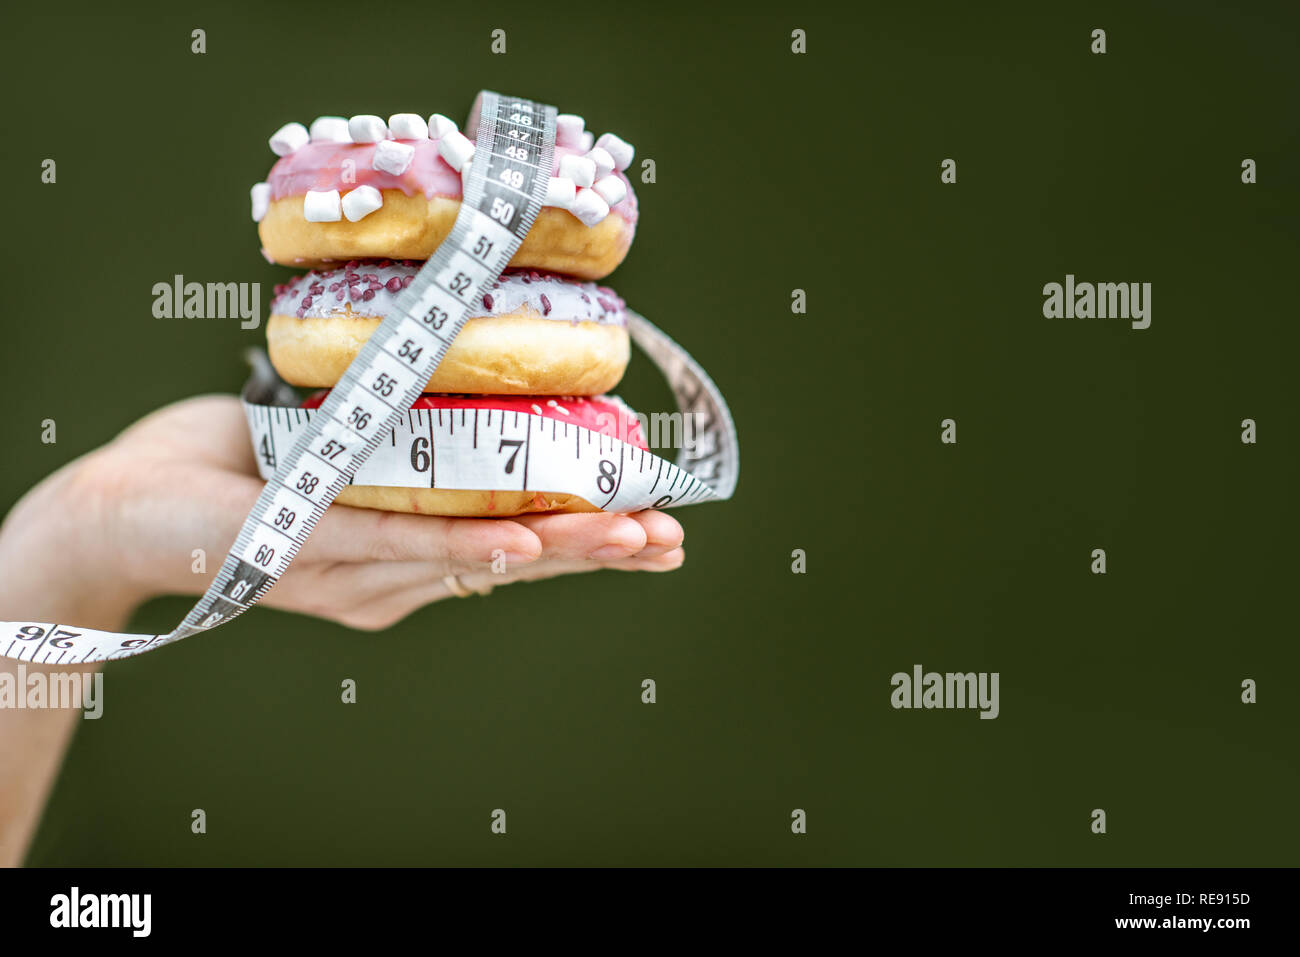 Three sweet donuts covered with measurement tape on the hand on the green background. Unhealthy eating and adiposity concept - Stock Image